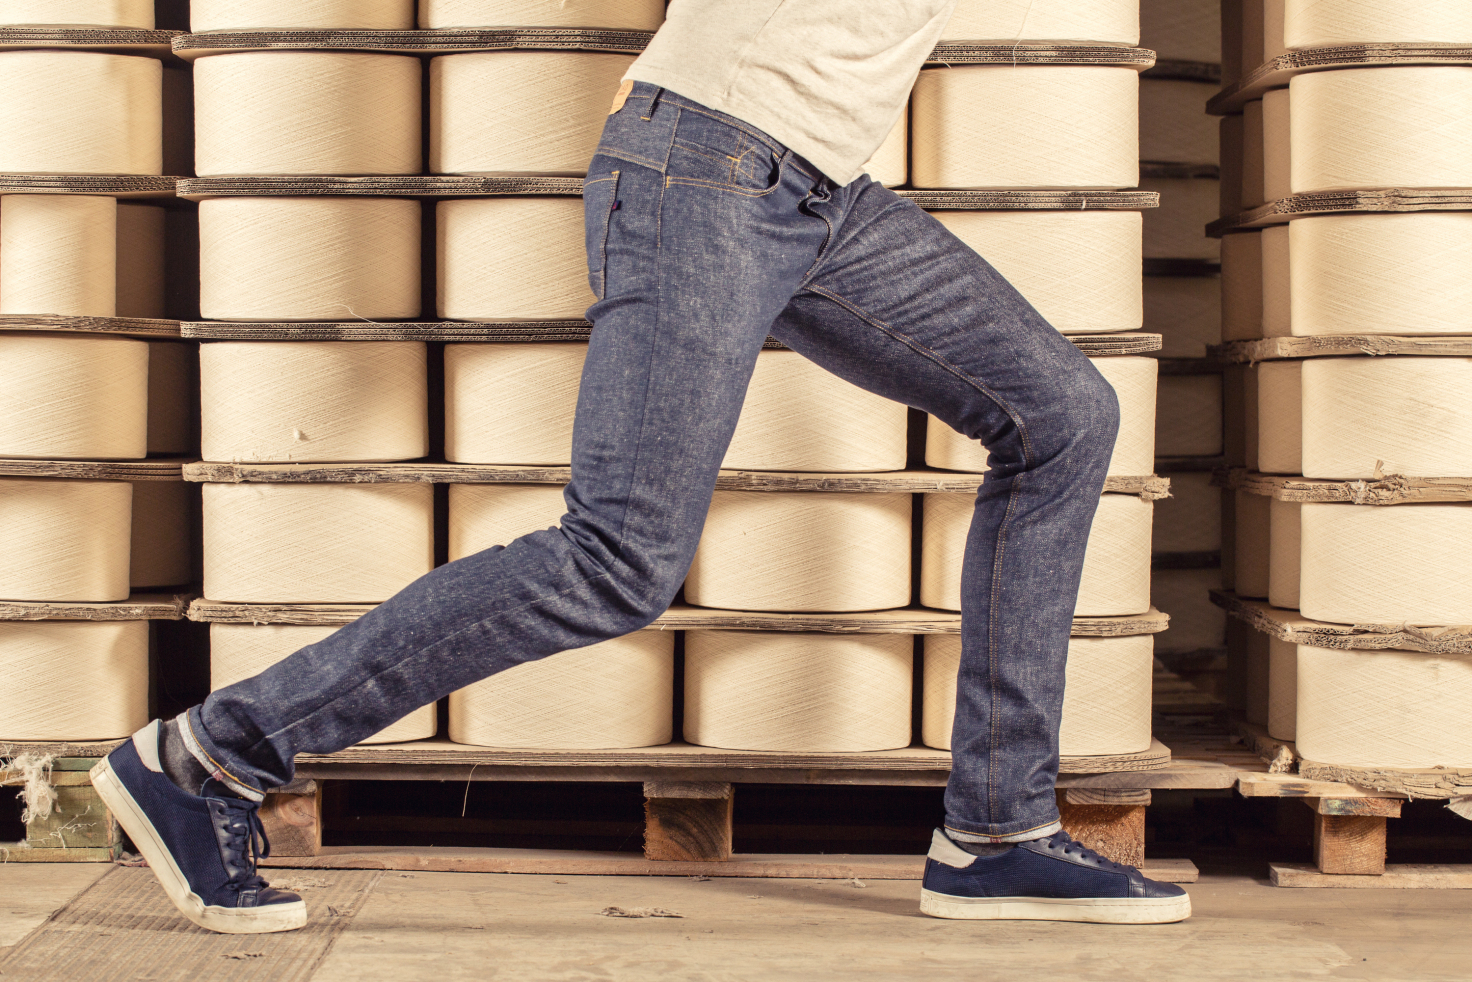 made-in-france-davy-dao-revolutionne-le-jeans-en-proposant-un-pantalon-fait-en-lin1